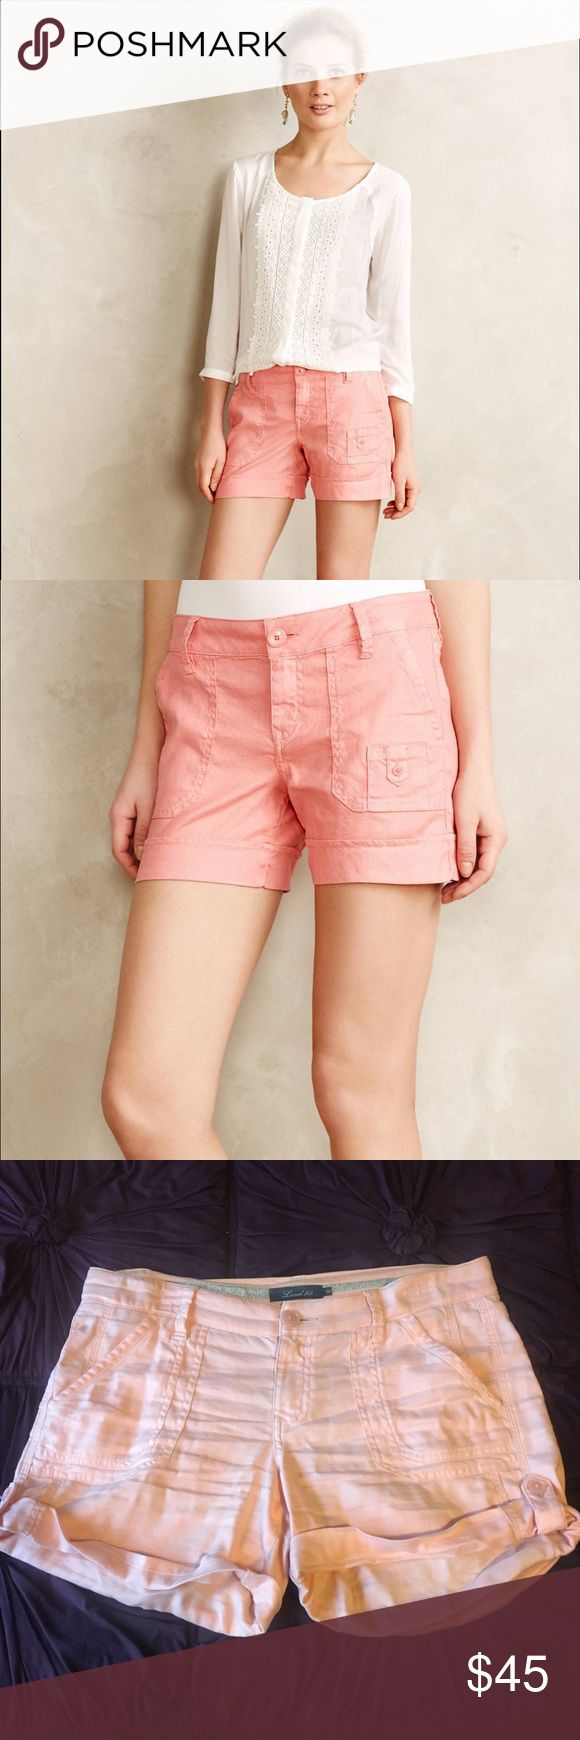 Anthropologie Level 99 Cuffed Cargo Shorts Only wore ONCE! And in MINT CONDITION! These are the Level 99 brand Cufffed Cargo Shorts sold at Anthropologie. Color is a GORG. Salmon pink color. 🤑👉🏼SEND ME A OFFER👈🏼🤑 Anthropologie Shorts Cargos